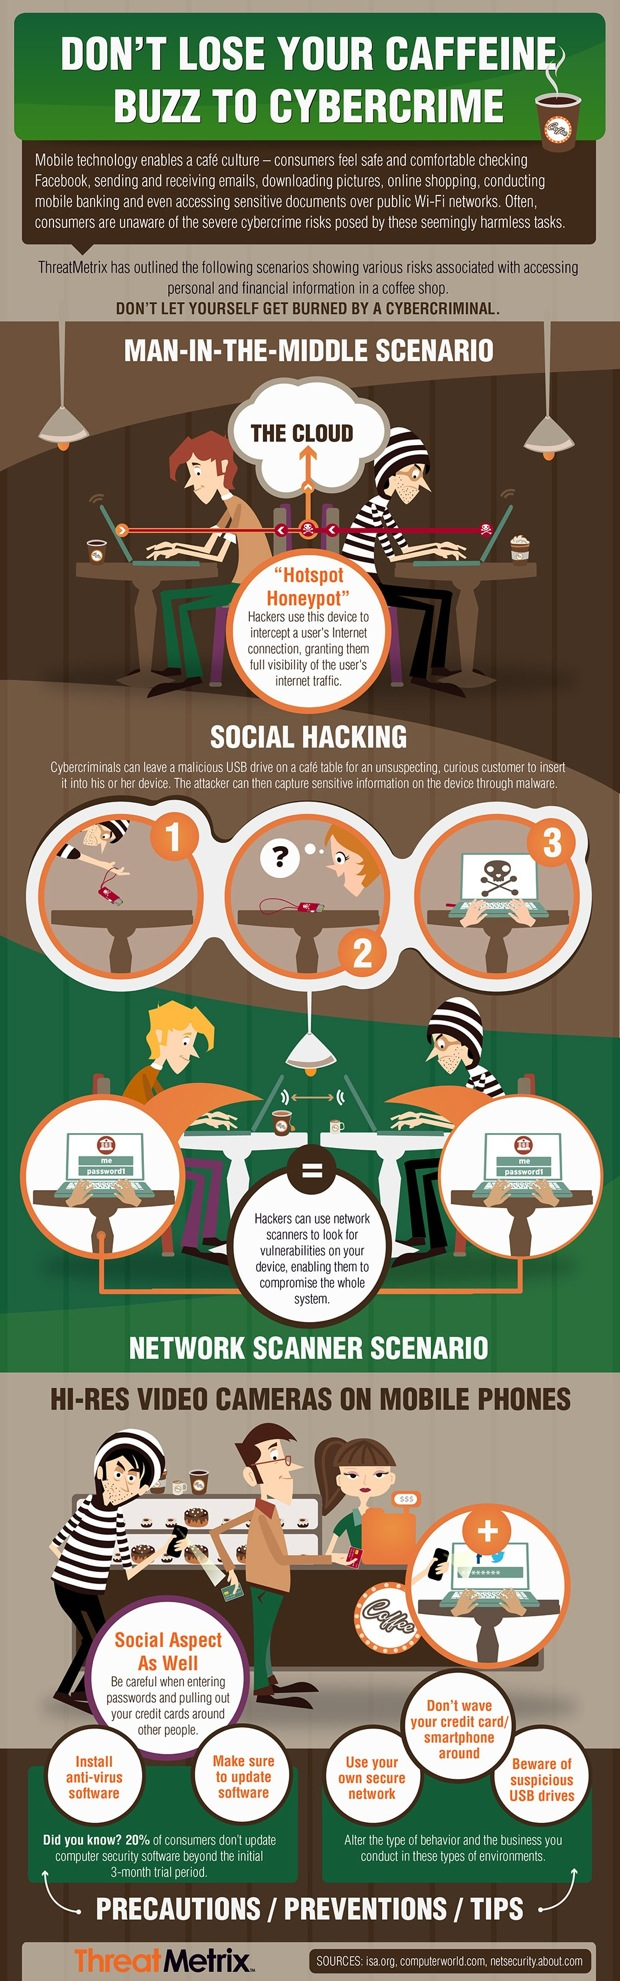 cybercrime in coffee shops graphic